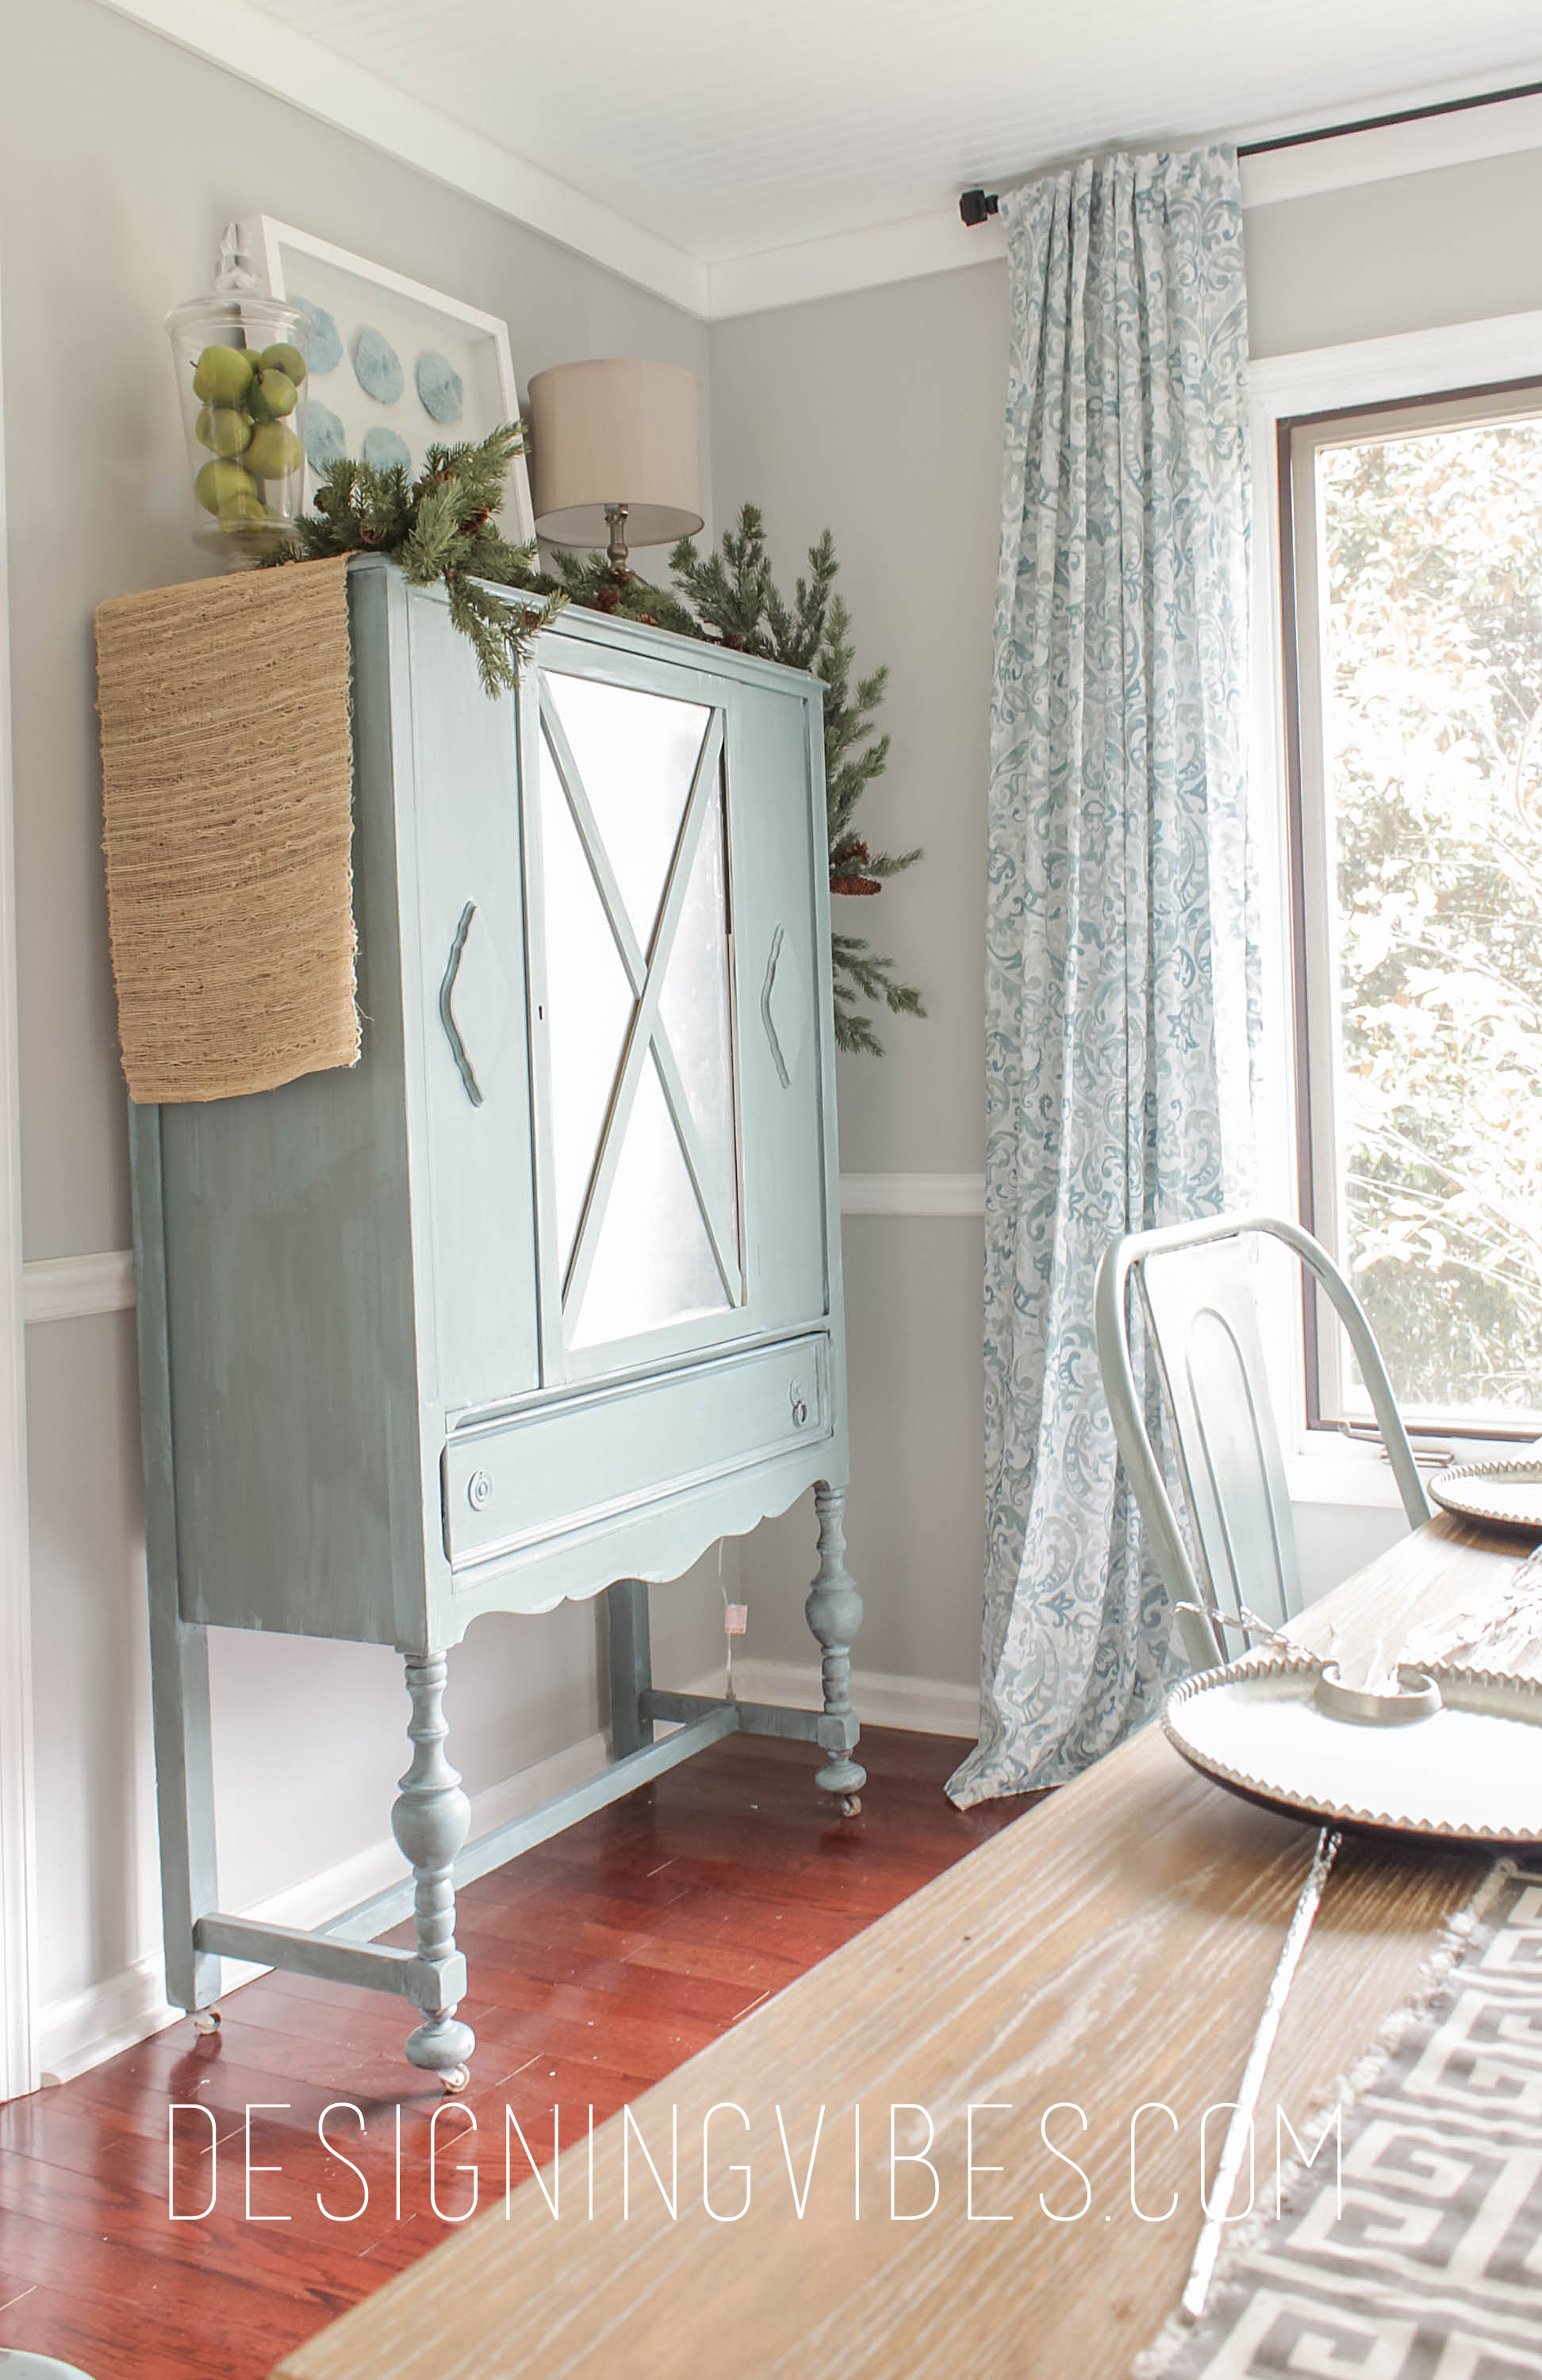 Curio Cabinet 2 And Here Is A Sneak Peek Of My Dining Room Being Prepped For The Holidays